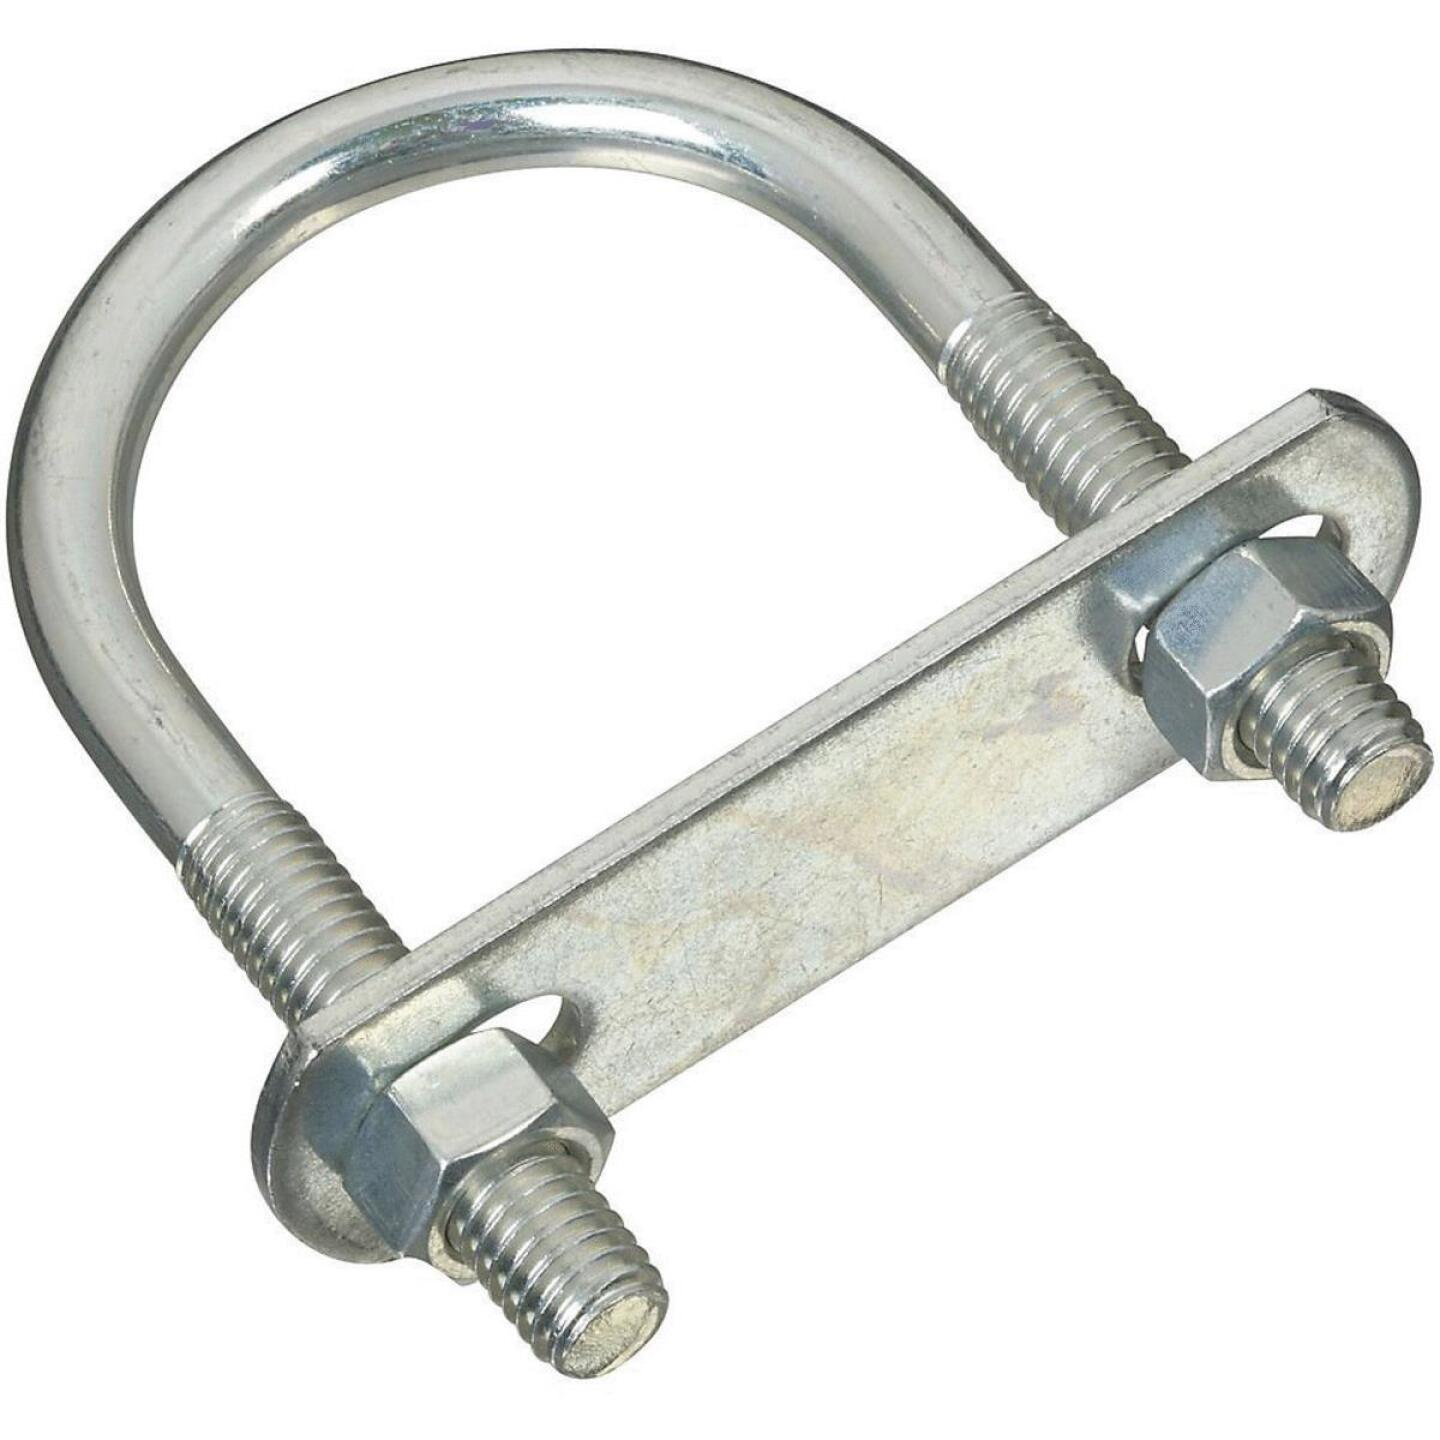 National 3/8 In. x 195 In. x 3.5 In. Zinc Round U Bolt Image 1